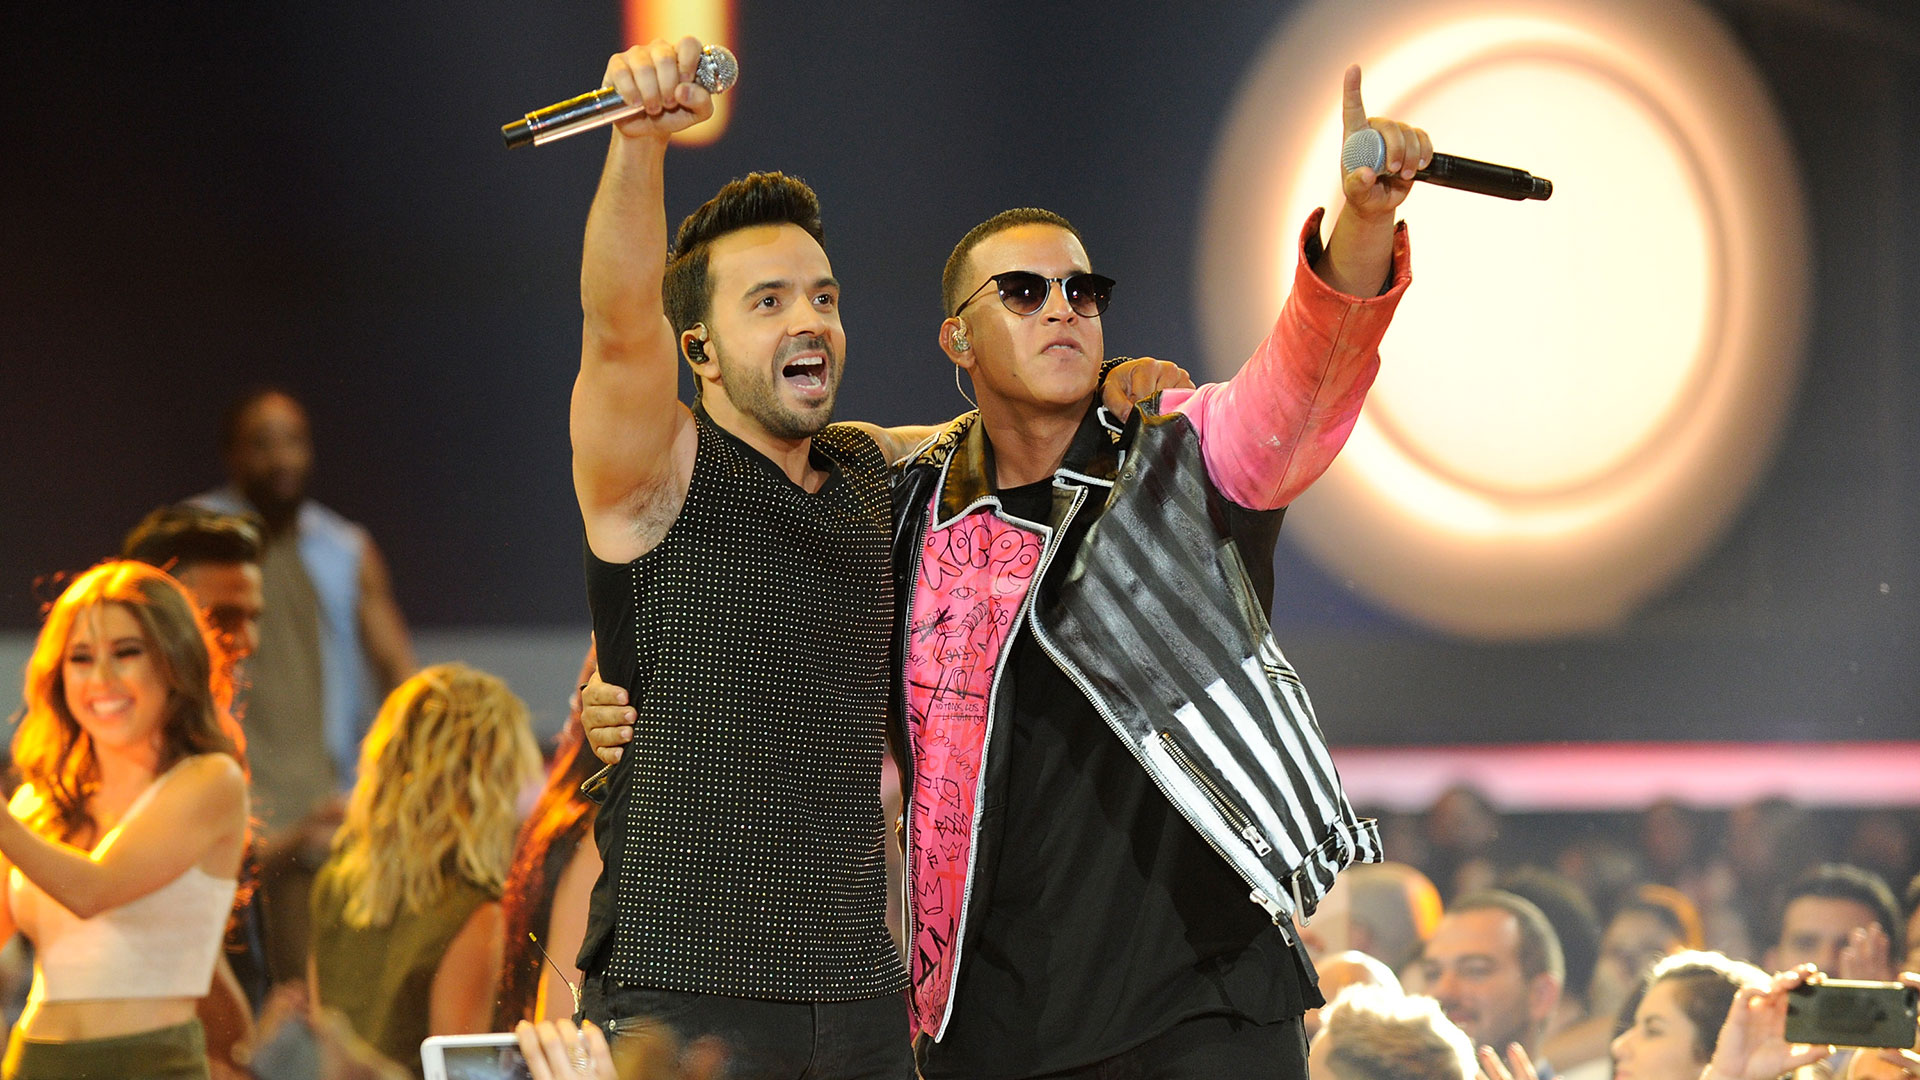 Luis Fonsi junto a Daddy Yankee (Getty Images)